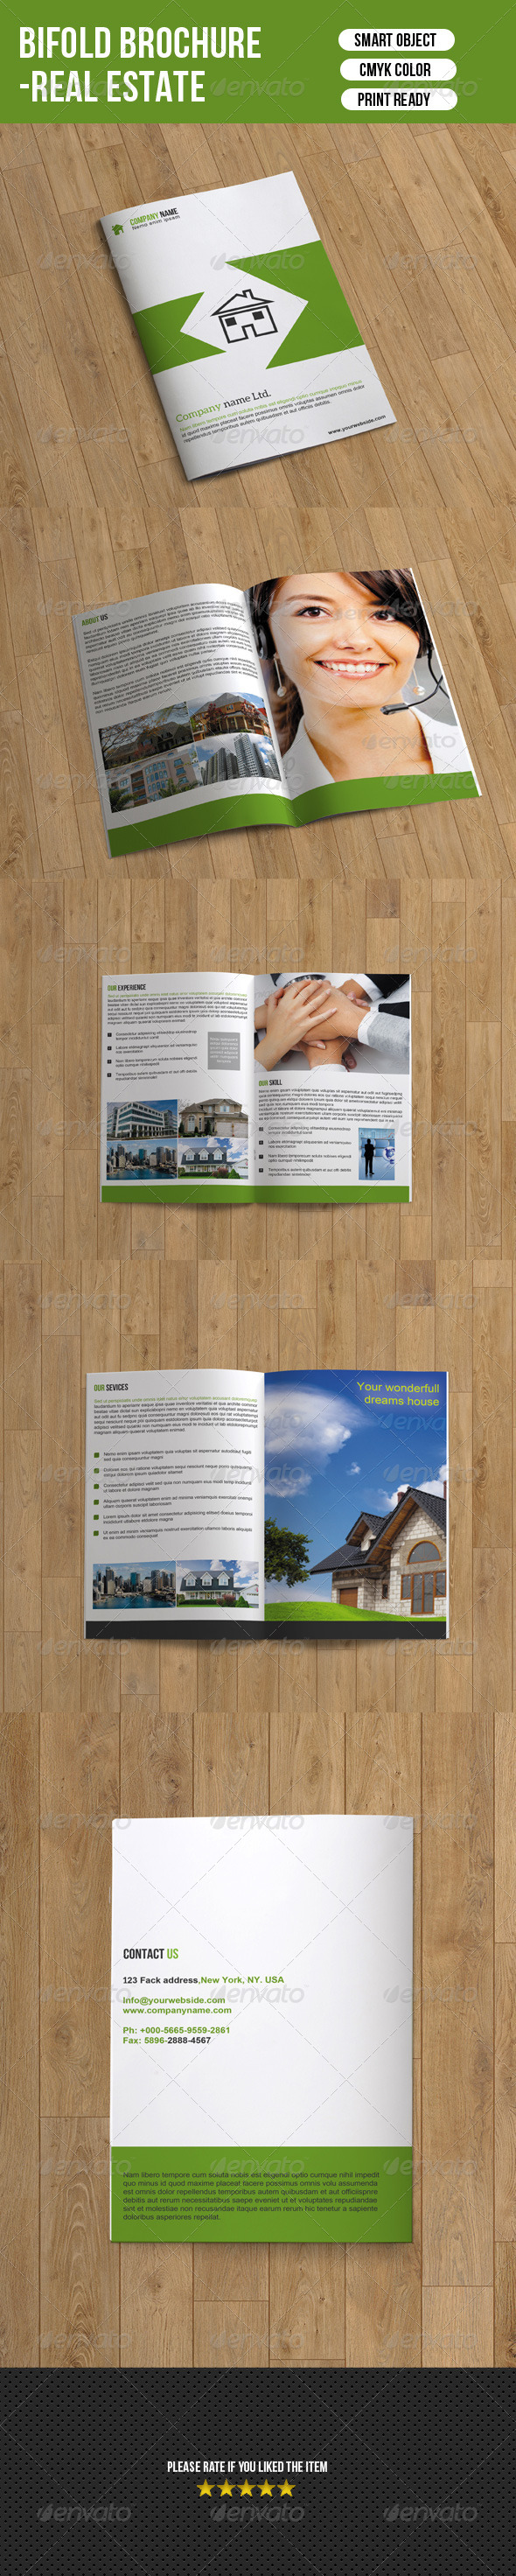 GraphicRiver Bifold Real Estate Brochure 7374889